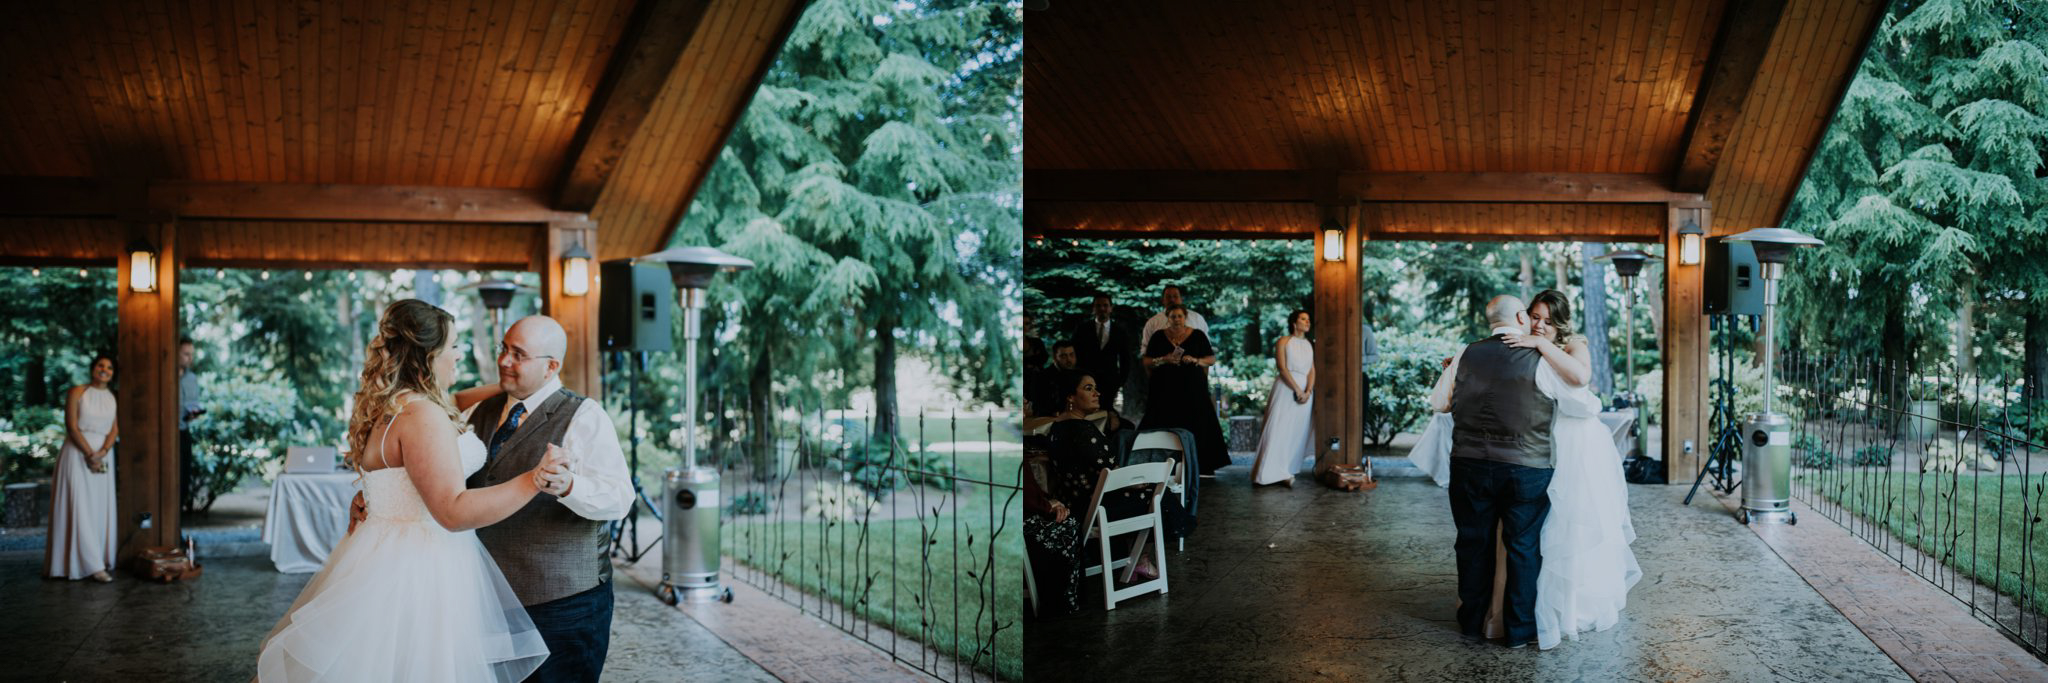 evergreen-gardens-bellingham-wedding-seattle-photographer-caitlyn-nikula-101.jpg